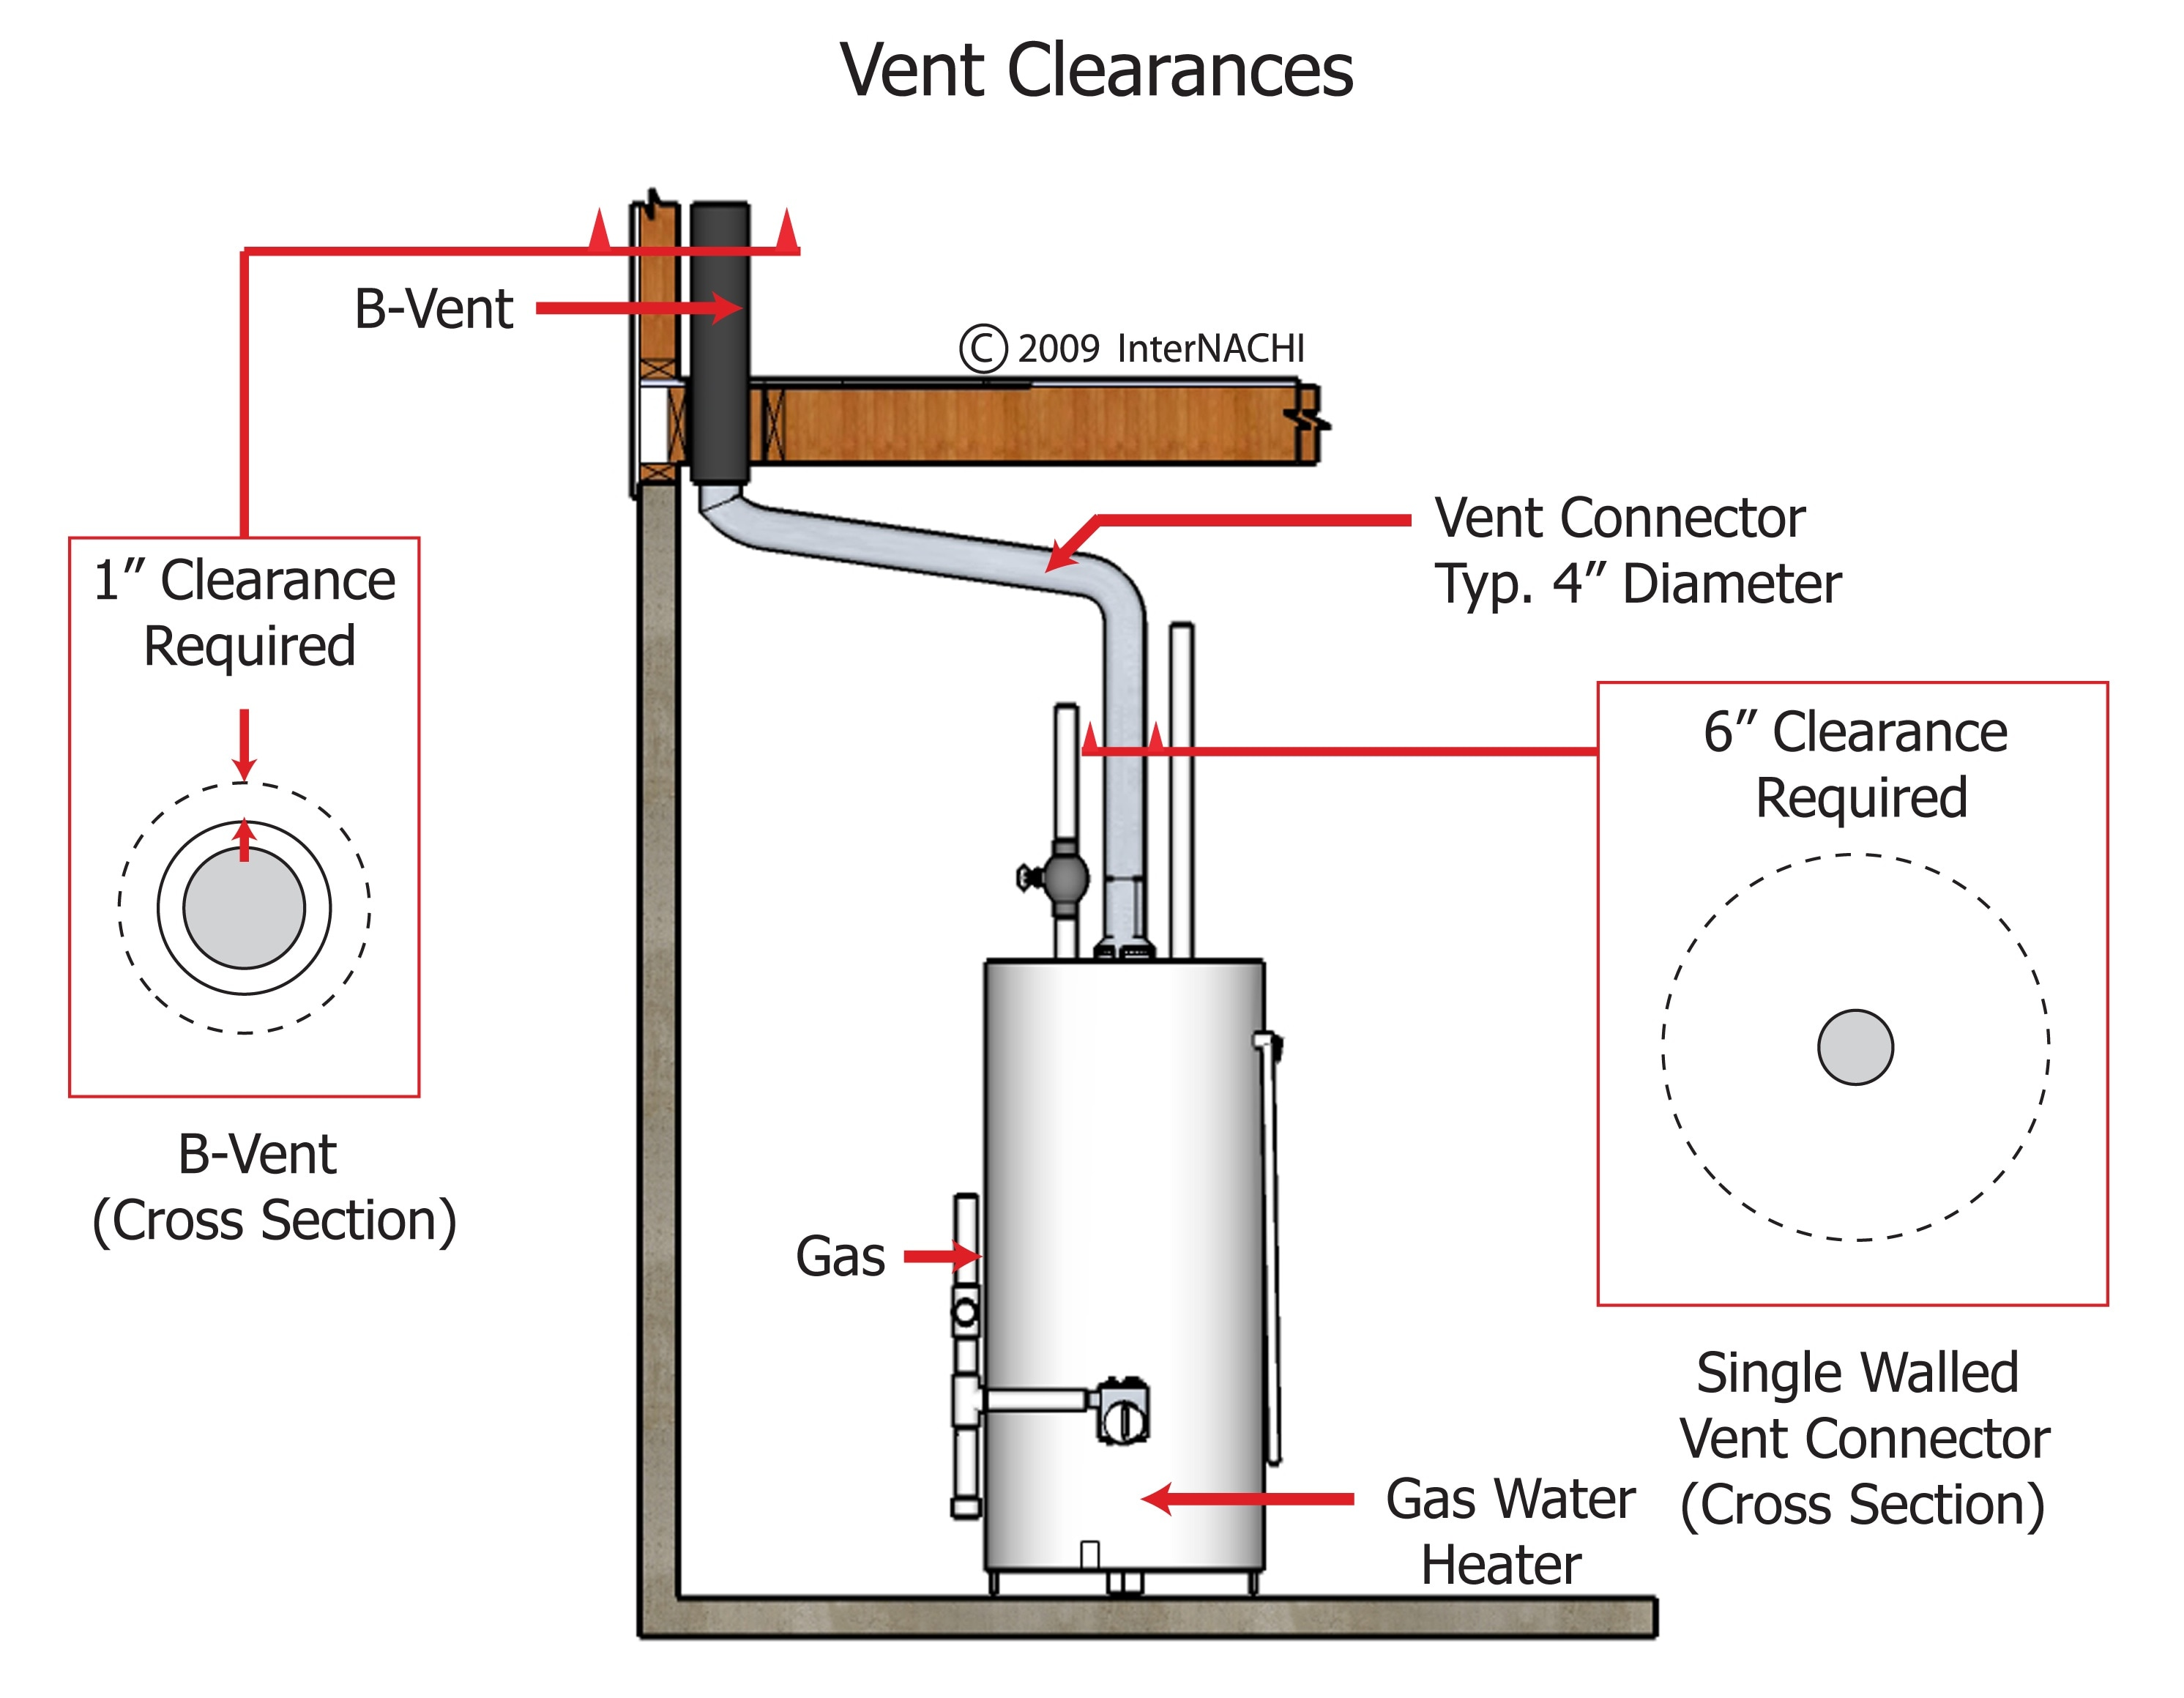 Gas Hot Water Heater Vent Index Of Gallery Images Plumbing General